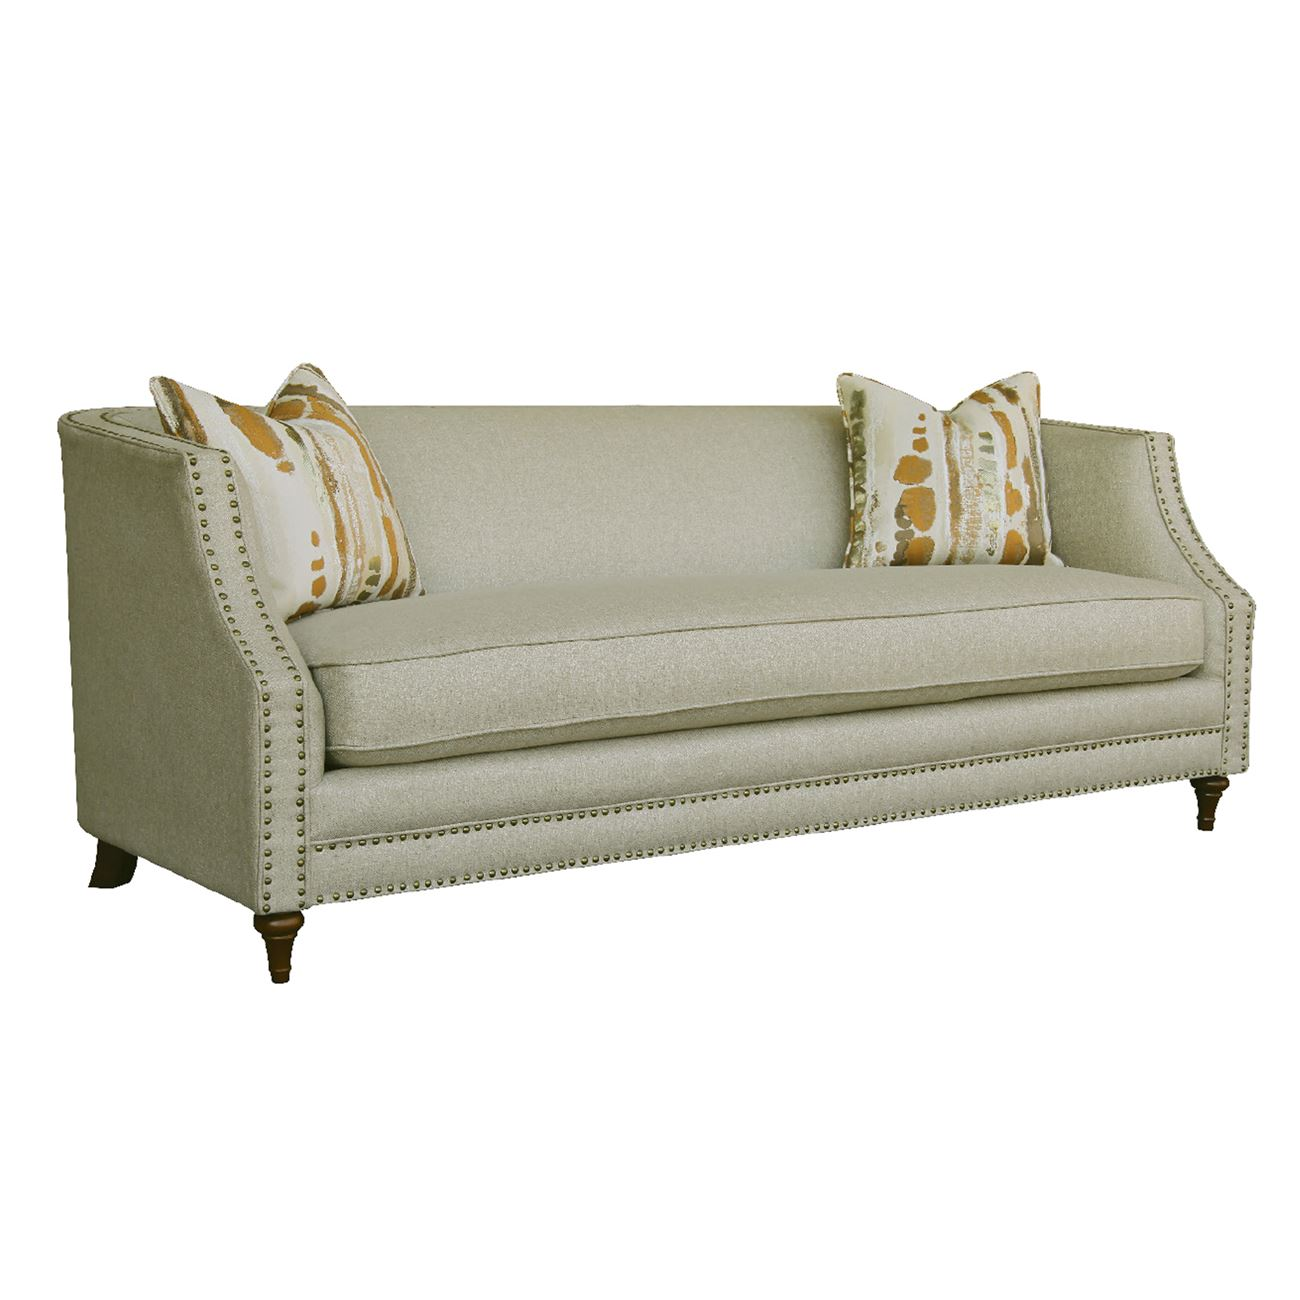 MARION 3-Seater Sofa Fabric Beige (Removable cushion covers)